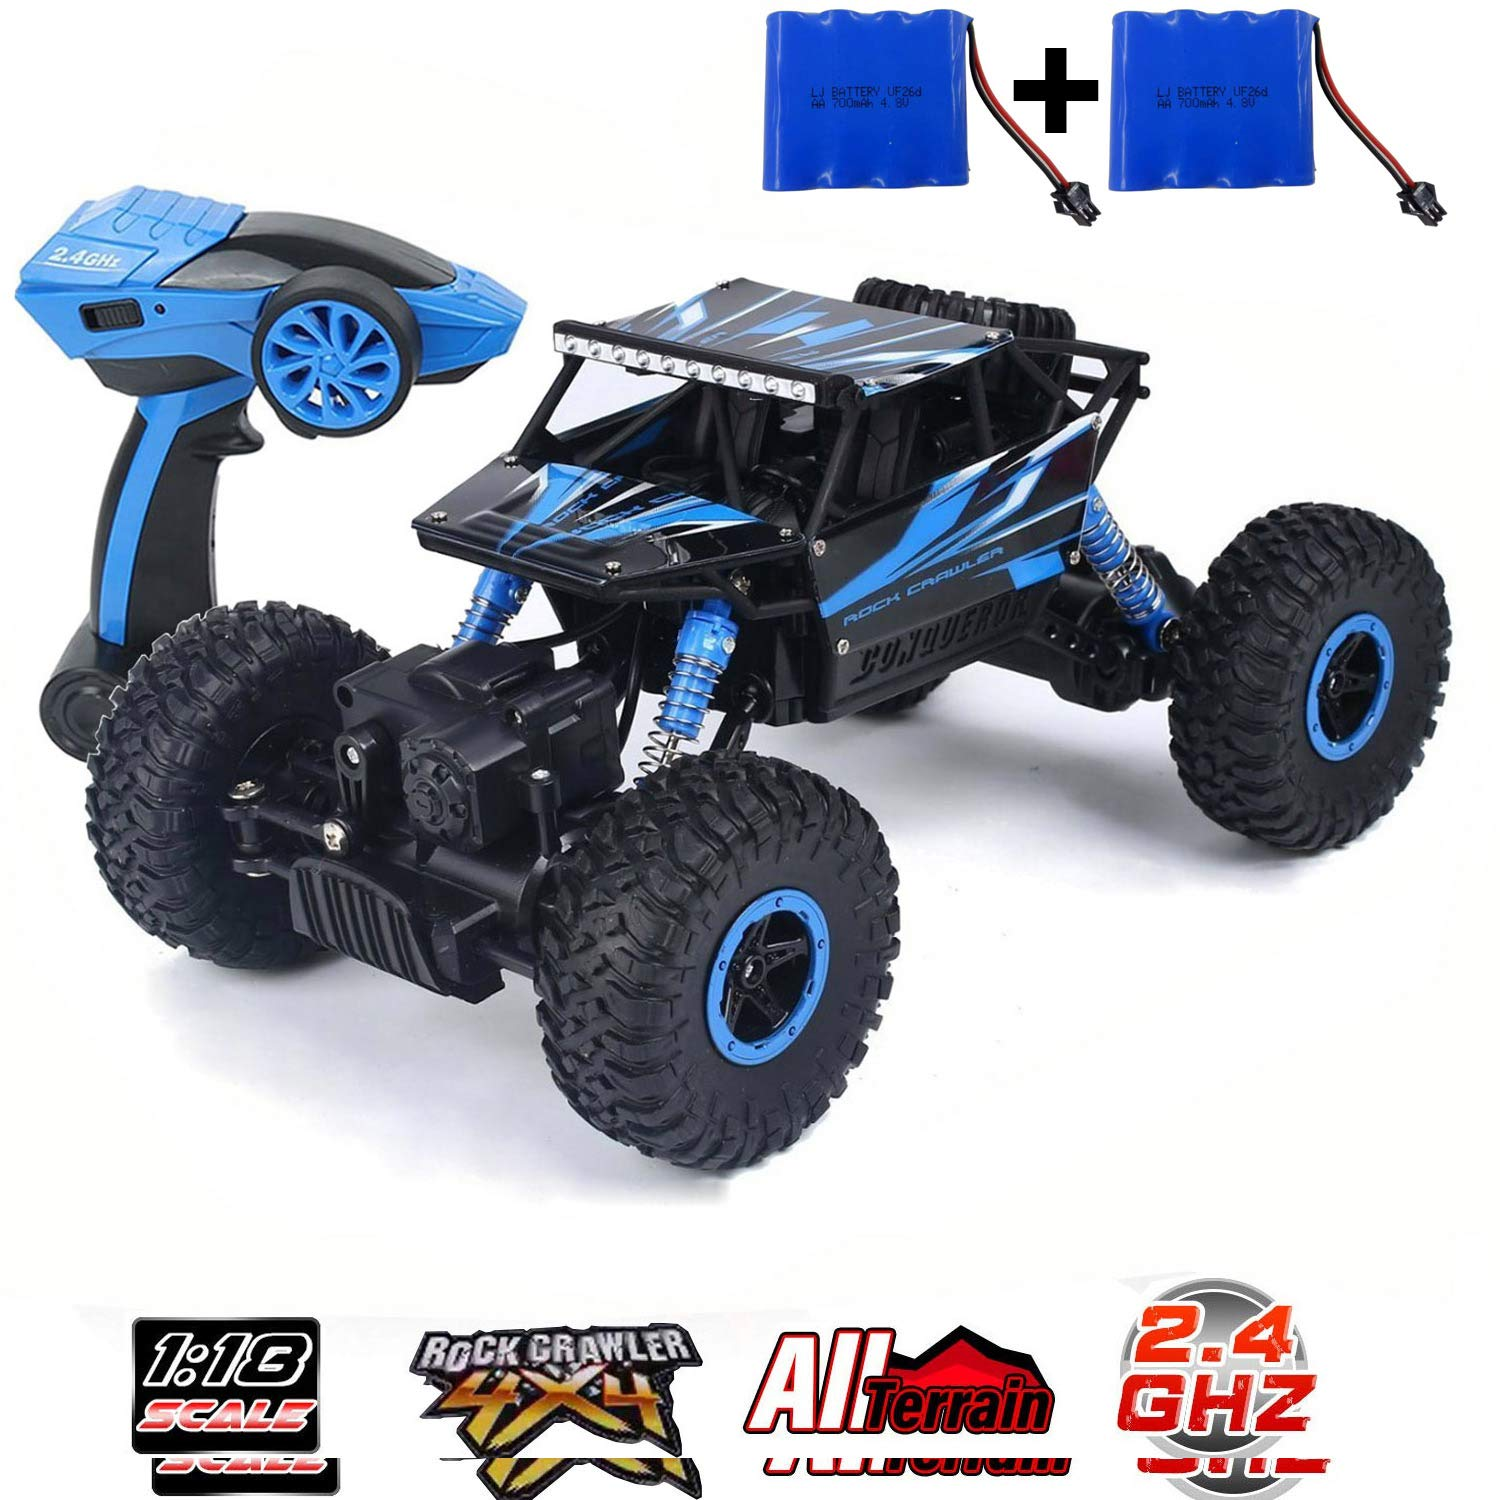 SZJJX RC Cars Off-Road Remote Control Car Trucks Vehicle 2.4Ghz 4WD Powerful 8 Racing Climbing Cars Radio Electric Rock Crawler Buggy Hobby Toy for Kids Gift-Blue